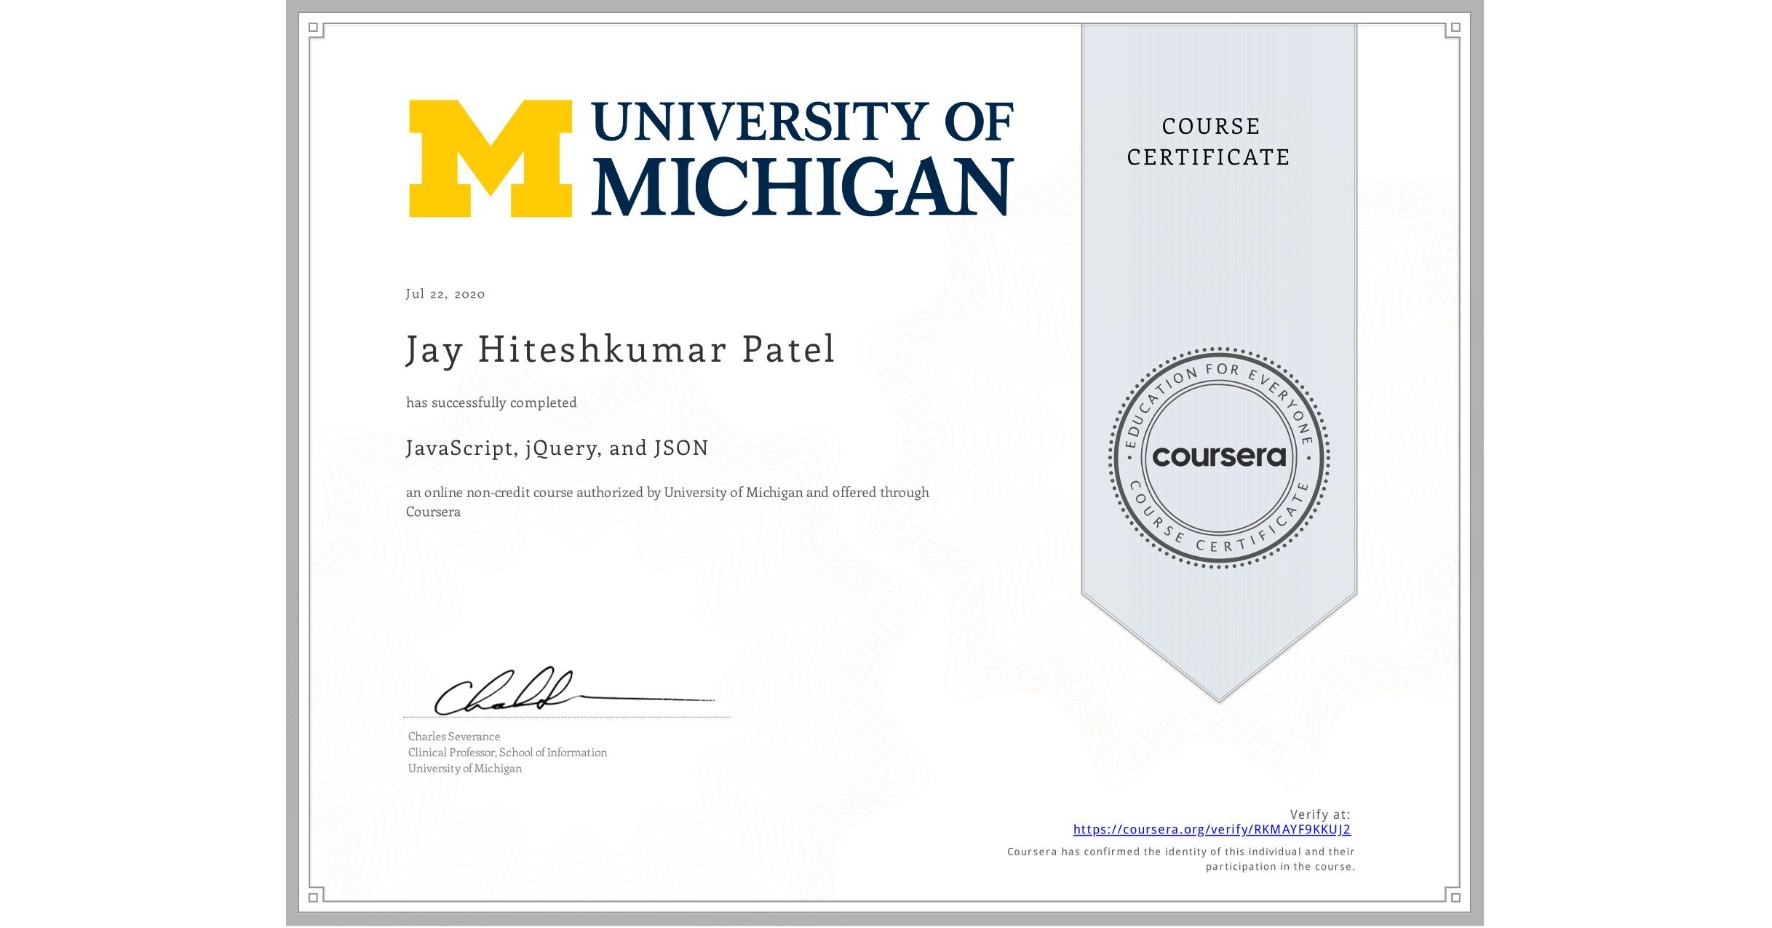 View certificate for Jay Hiteshkumar Patel, JavaScript, jQuery, and JSON, an online non-credit course authorized by University of Michigan and offered through Coursera